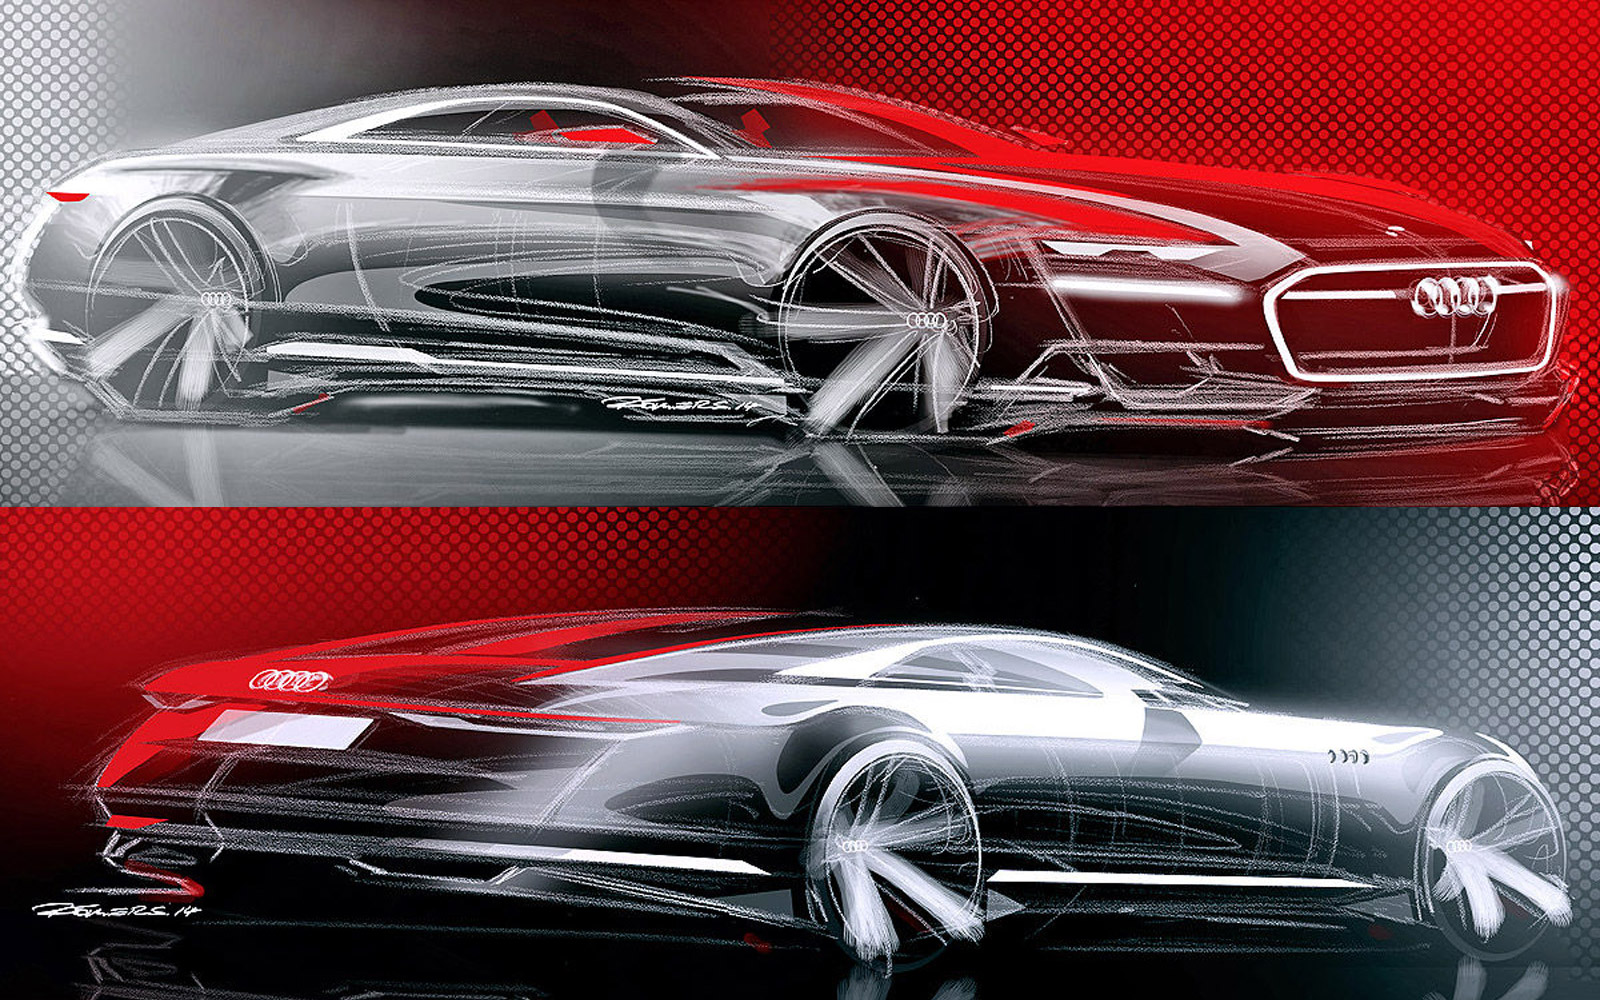 Audi Prologue Concept Teased In New Sketches, Could ...